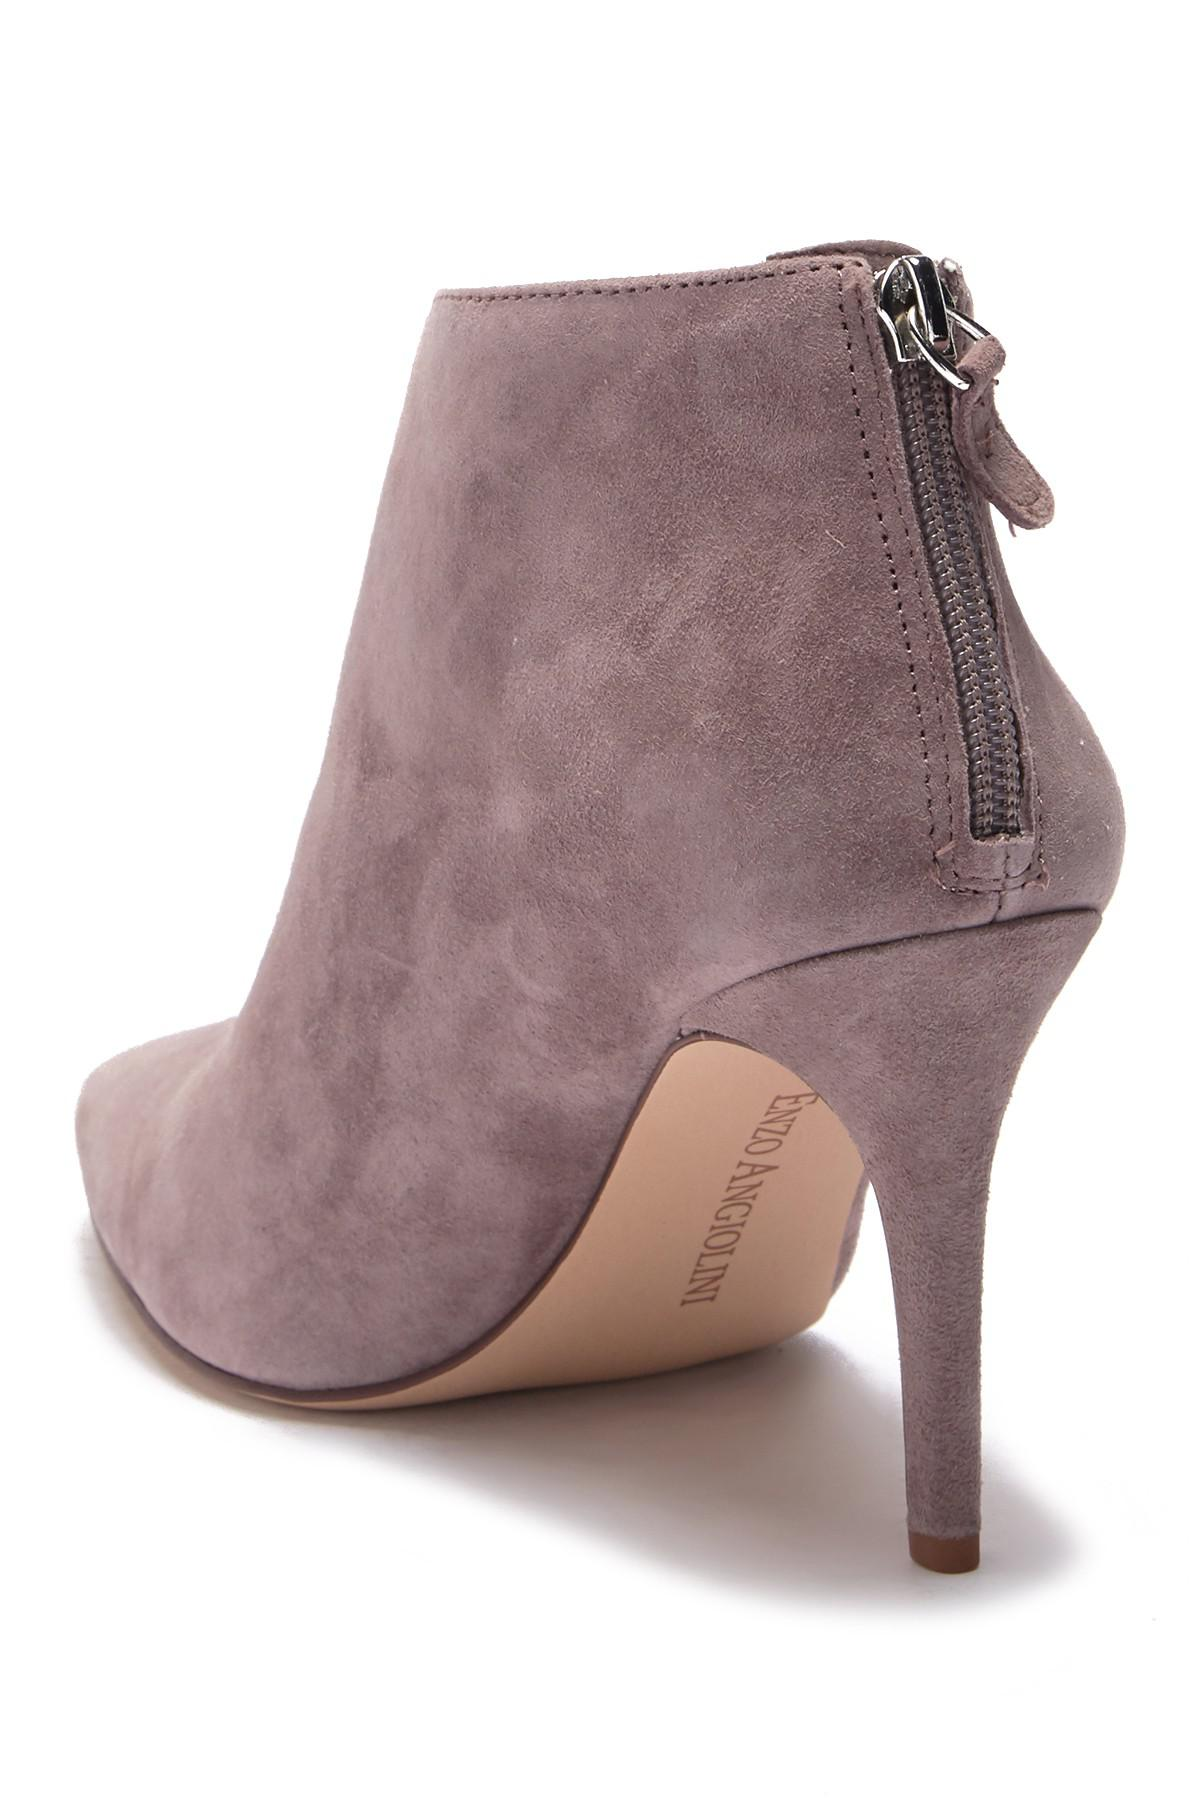 0549d5488 Enzo Angiolini - Multicolor Ruthely Suede Bootie - Lyst. View fullscreen